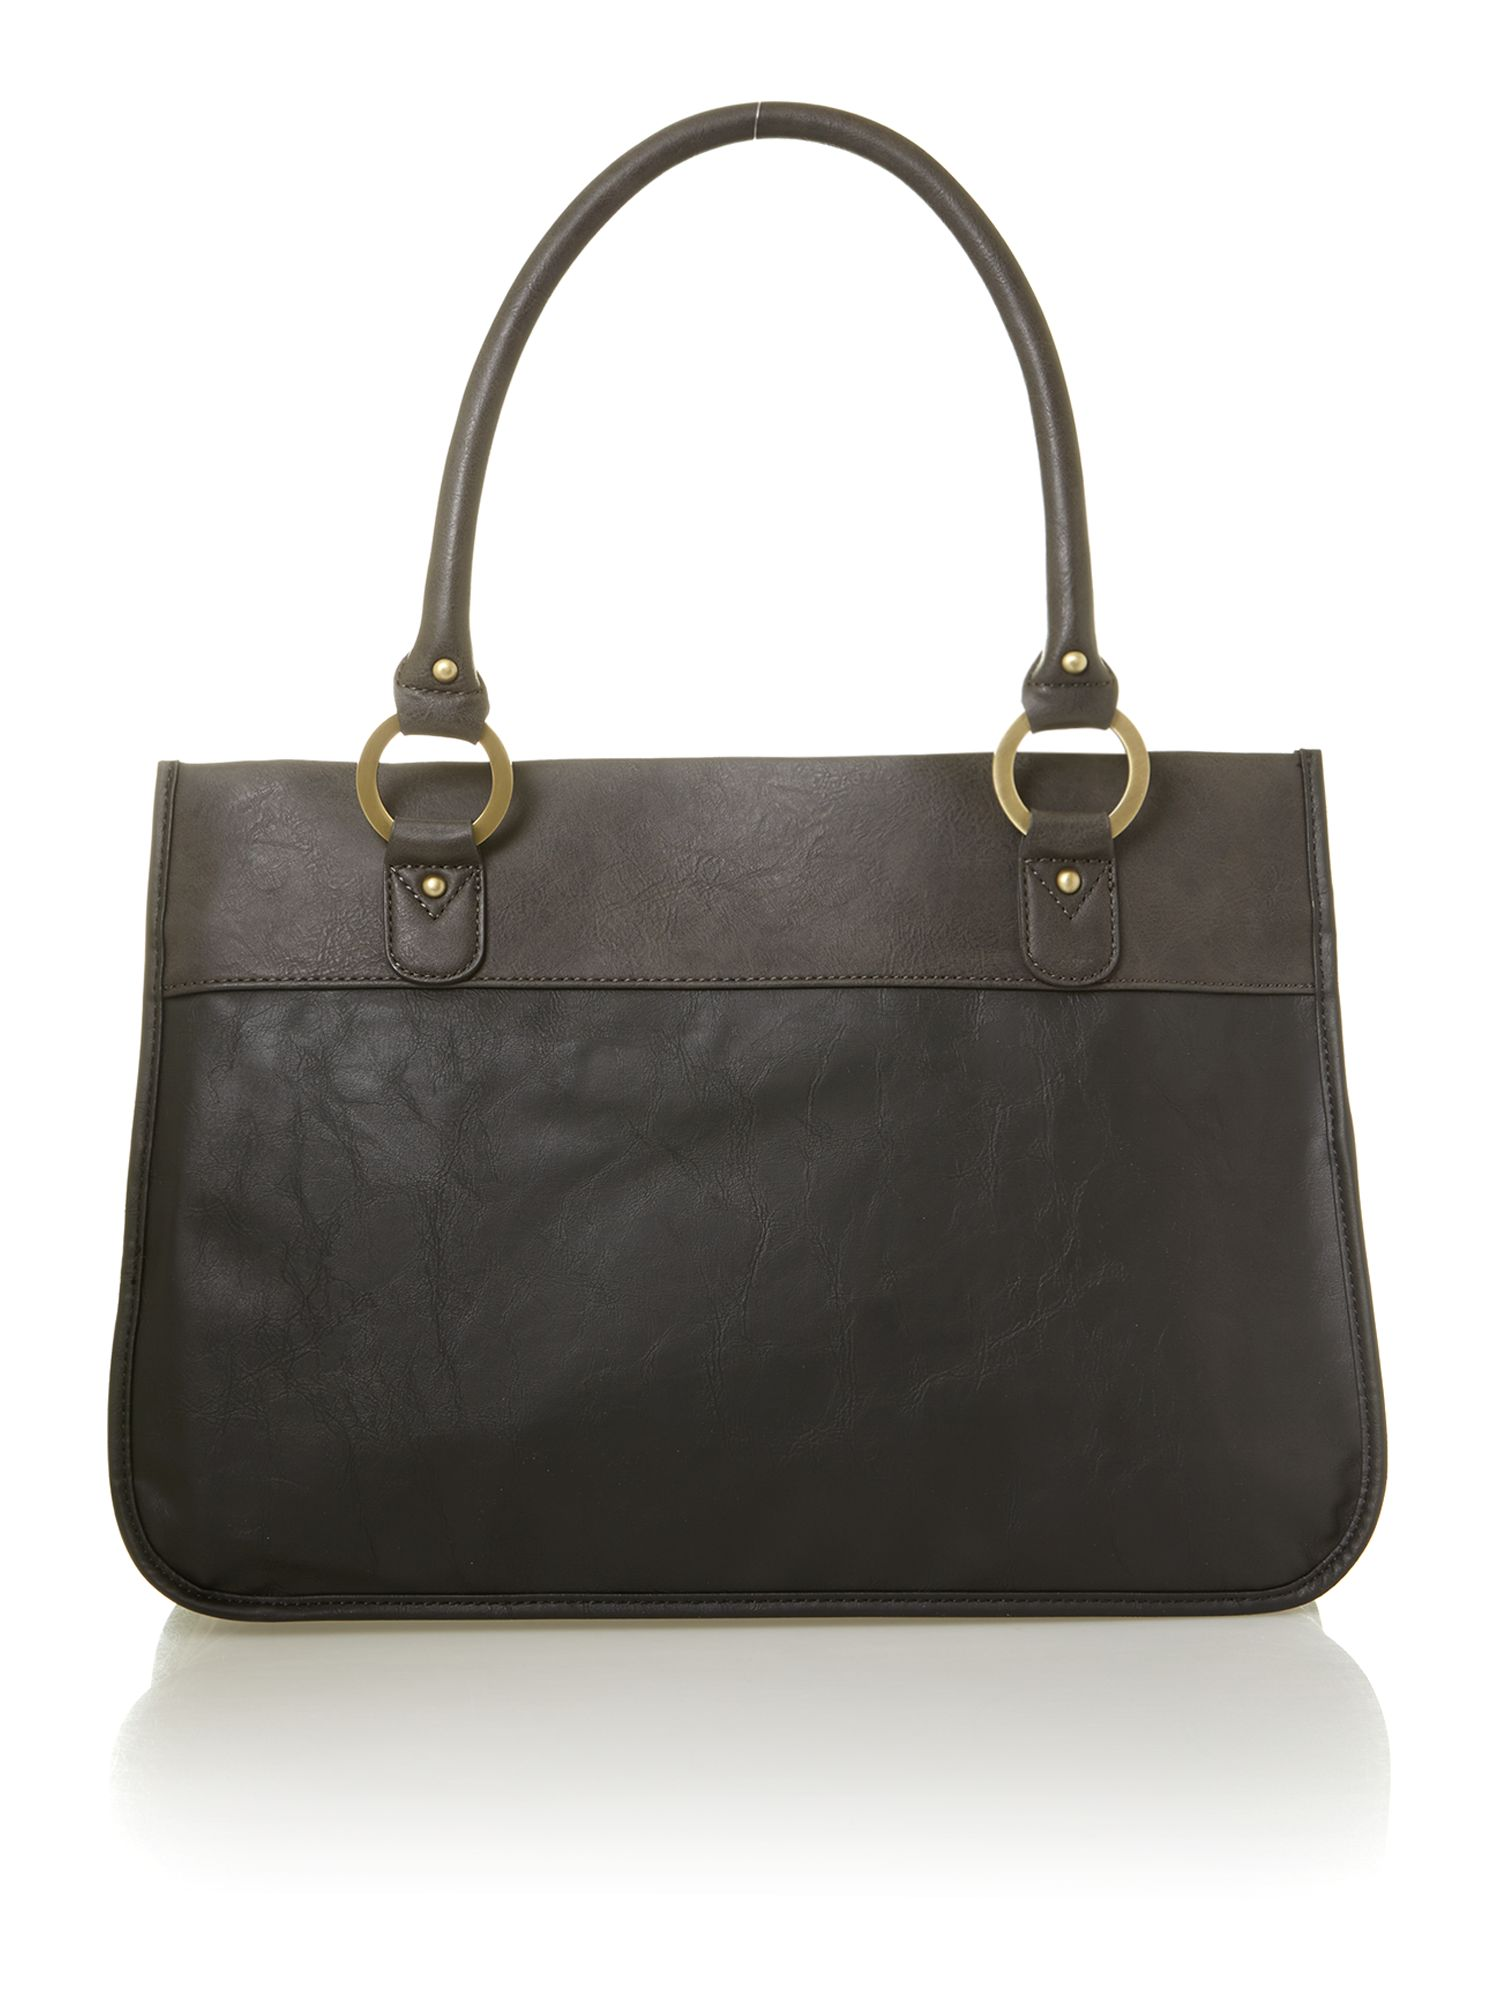 Nicholas black large tote bag